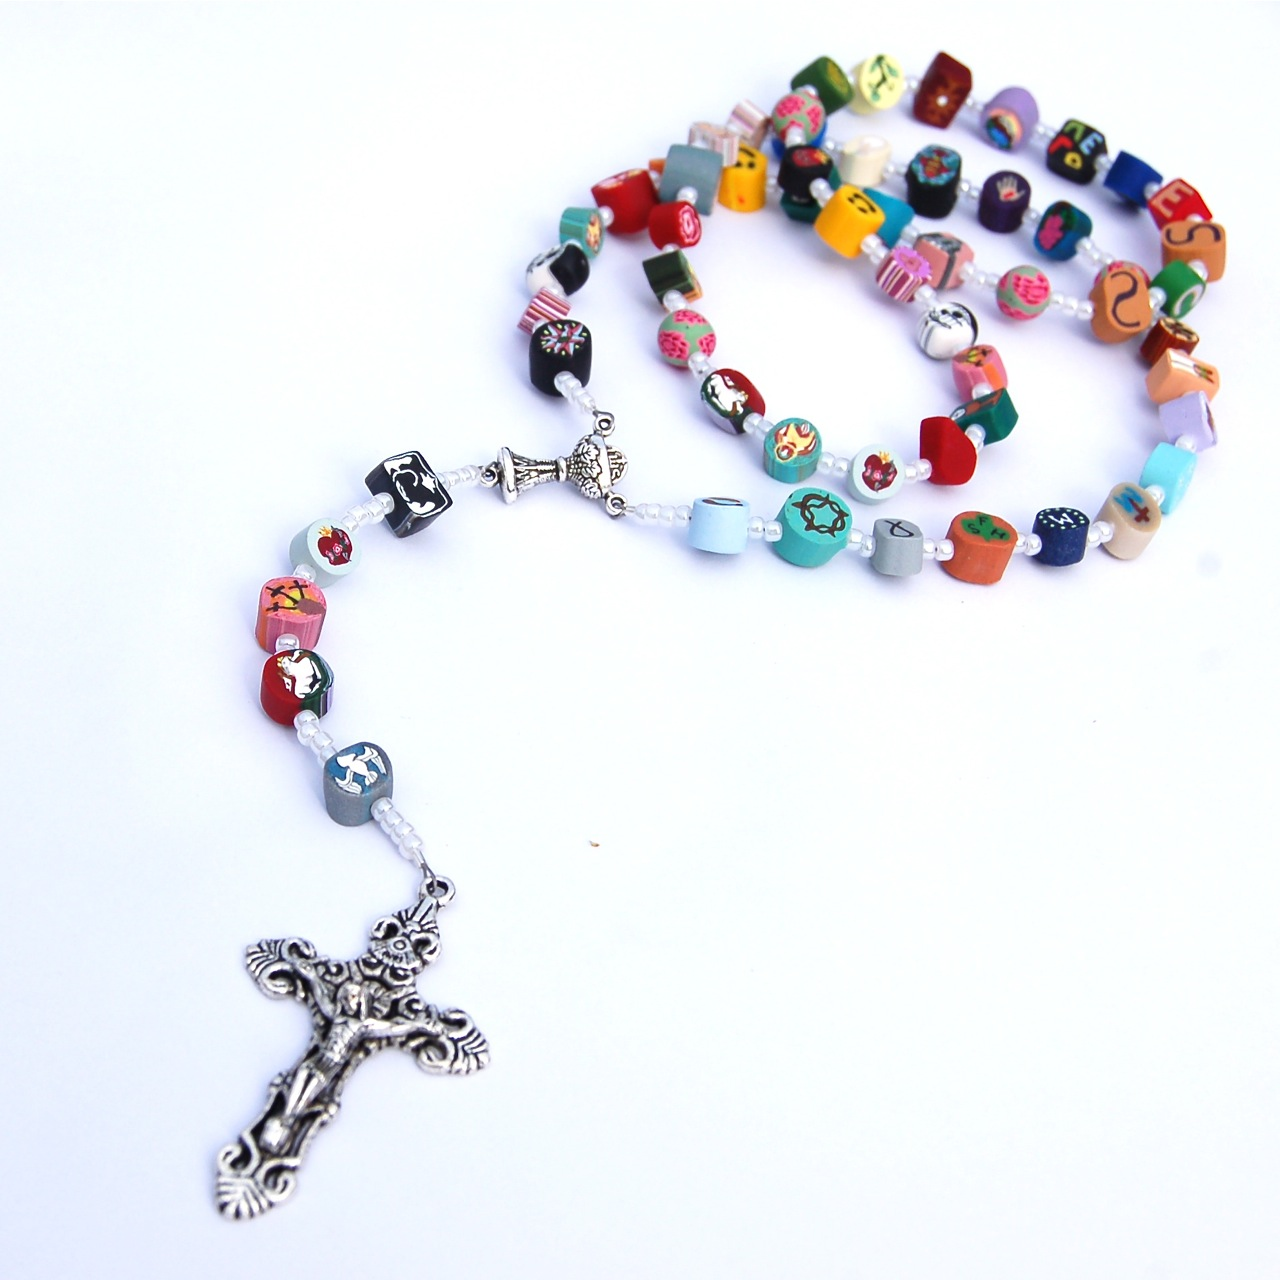 catholic-rosary-beads-clipart-gallery-for-rosary-border-TfKy13-clipart.jpg